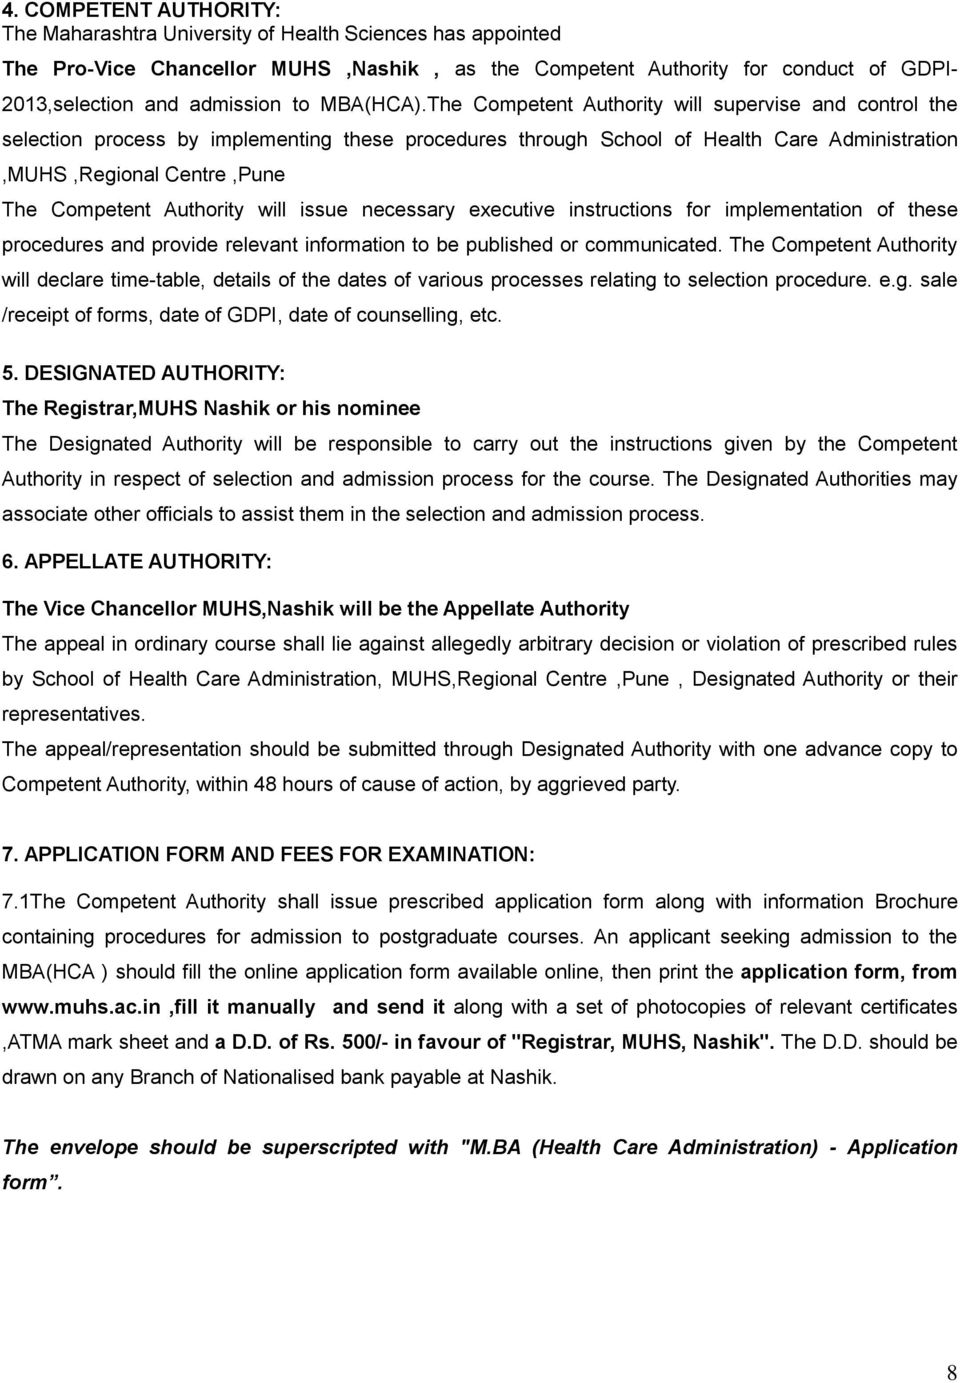 The Competent Authority will supervise and control the selection process by implementing these procedures through School of Health Care Administration,MUHS,Regional Centre,Pune The Competent